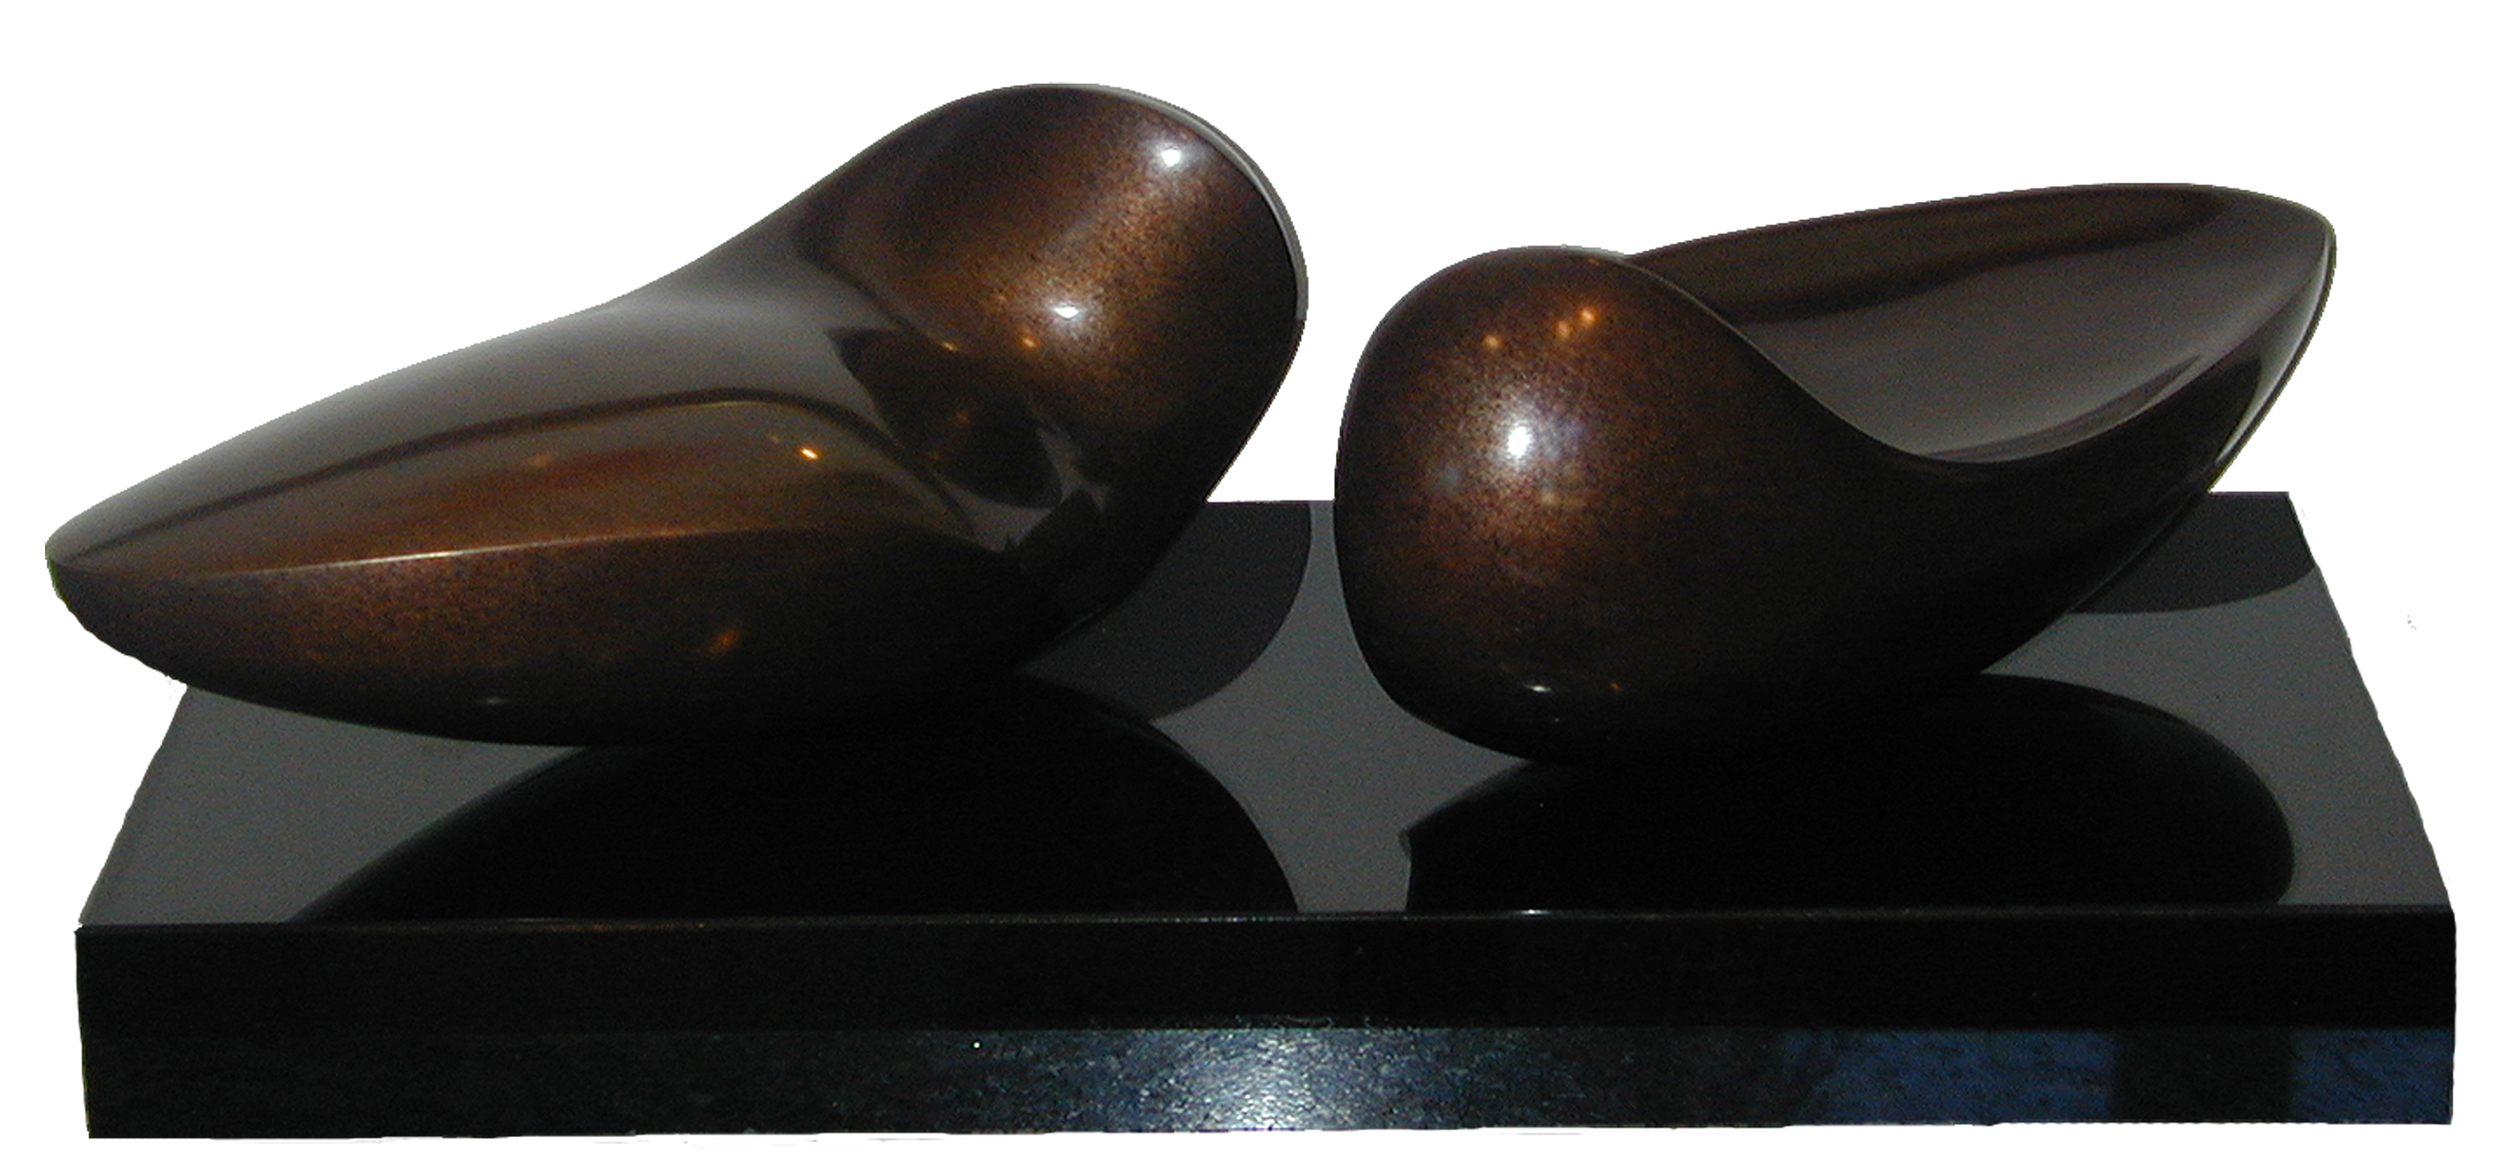 "Mandoria Piccola  Jack Zajac JZ140 Bronze with Brown Patina on Granite base 3.5"" x 14"" x 8"""